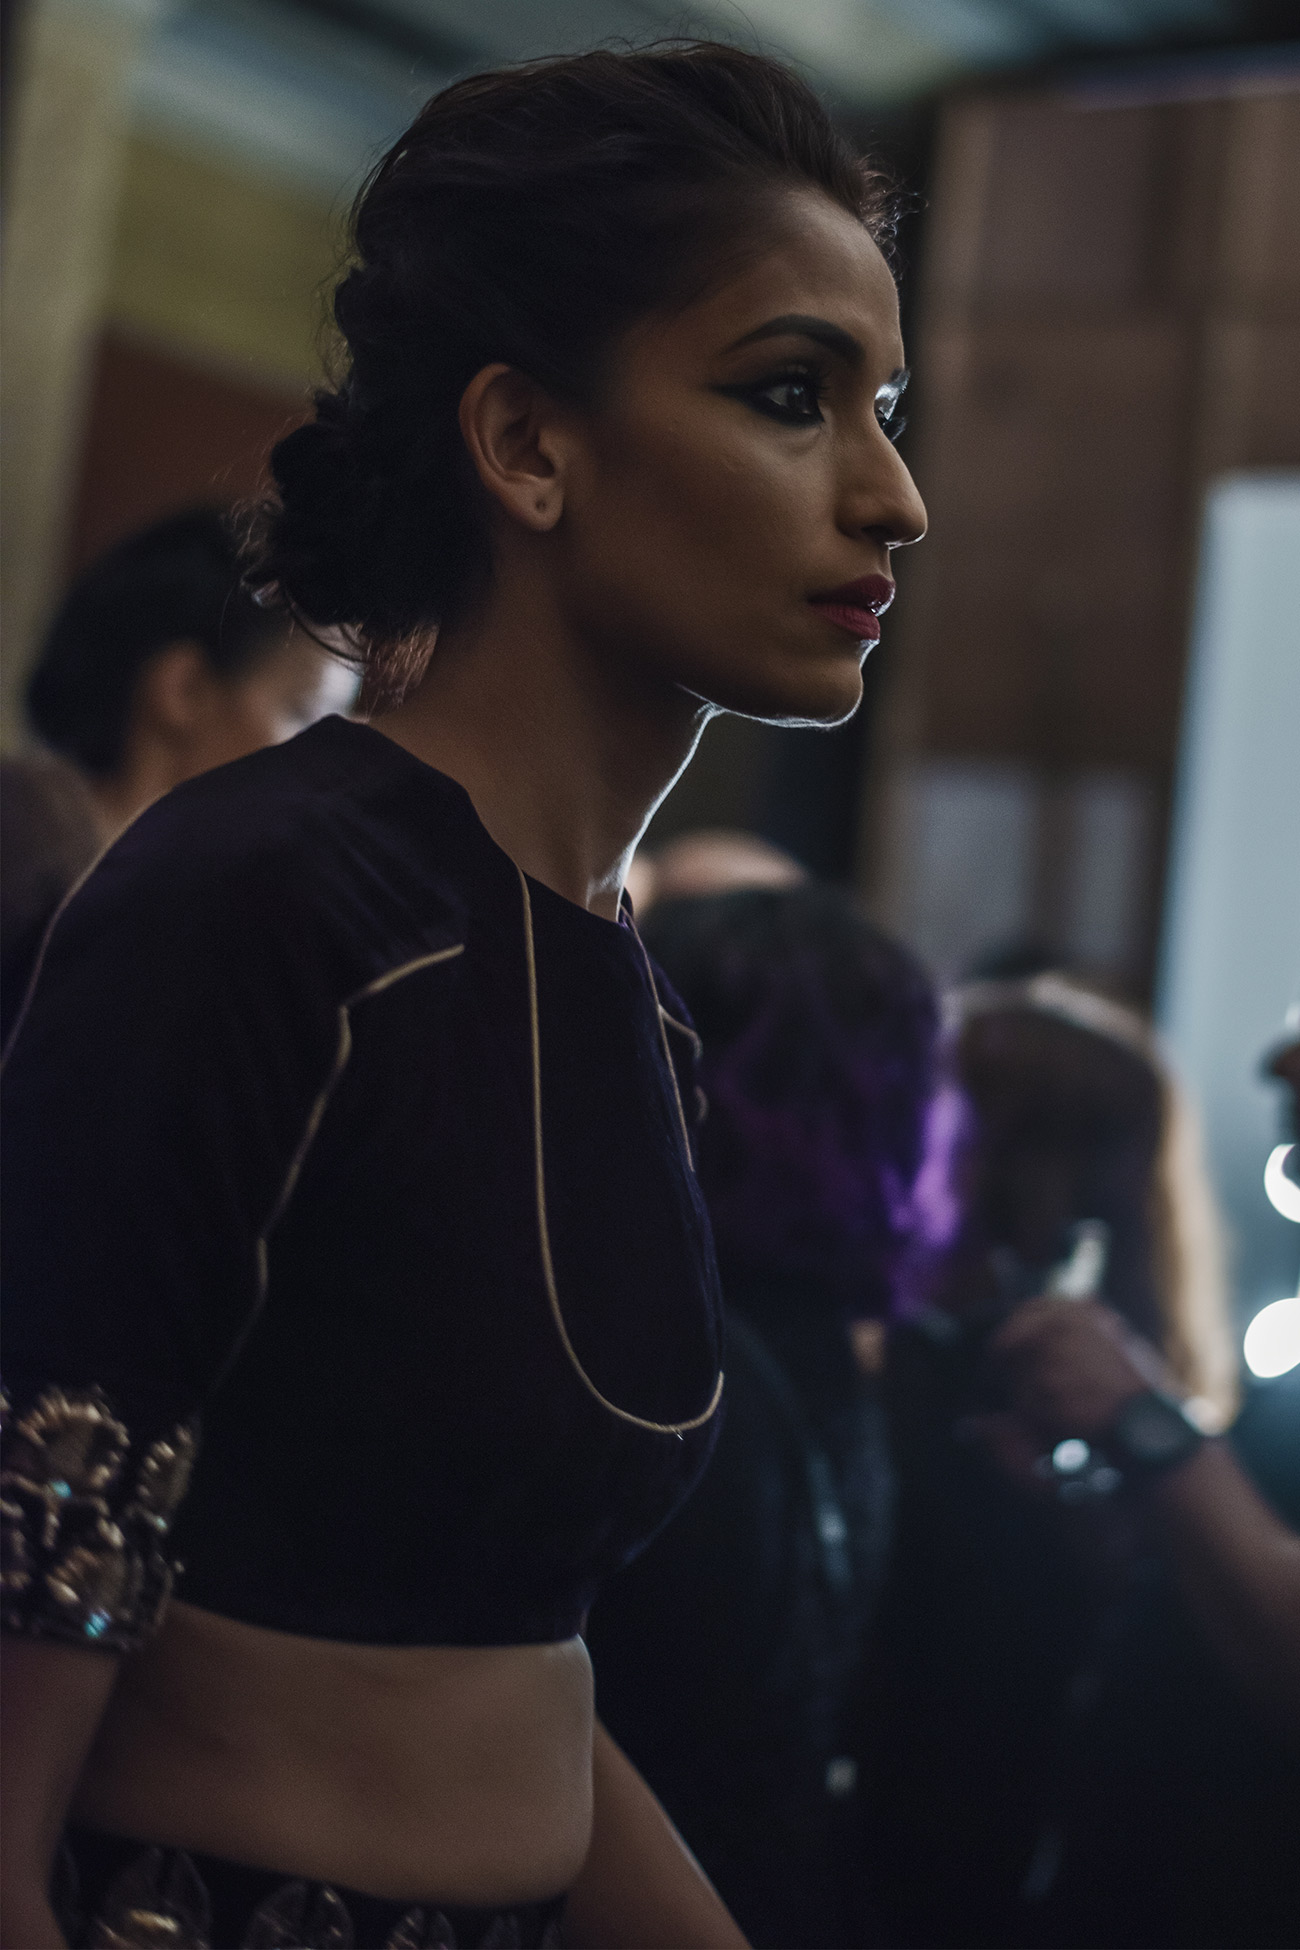 Backstage FDCI India Couture Week 2016 Photo by RAWKY KSH 6